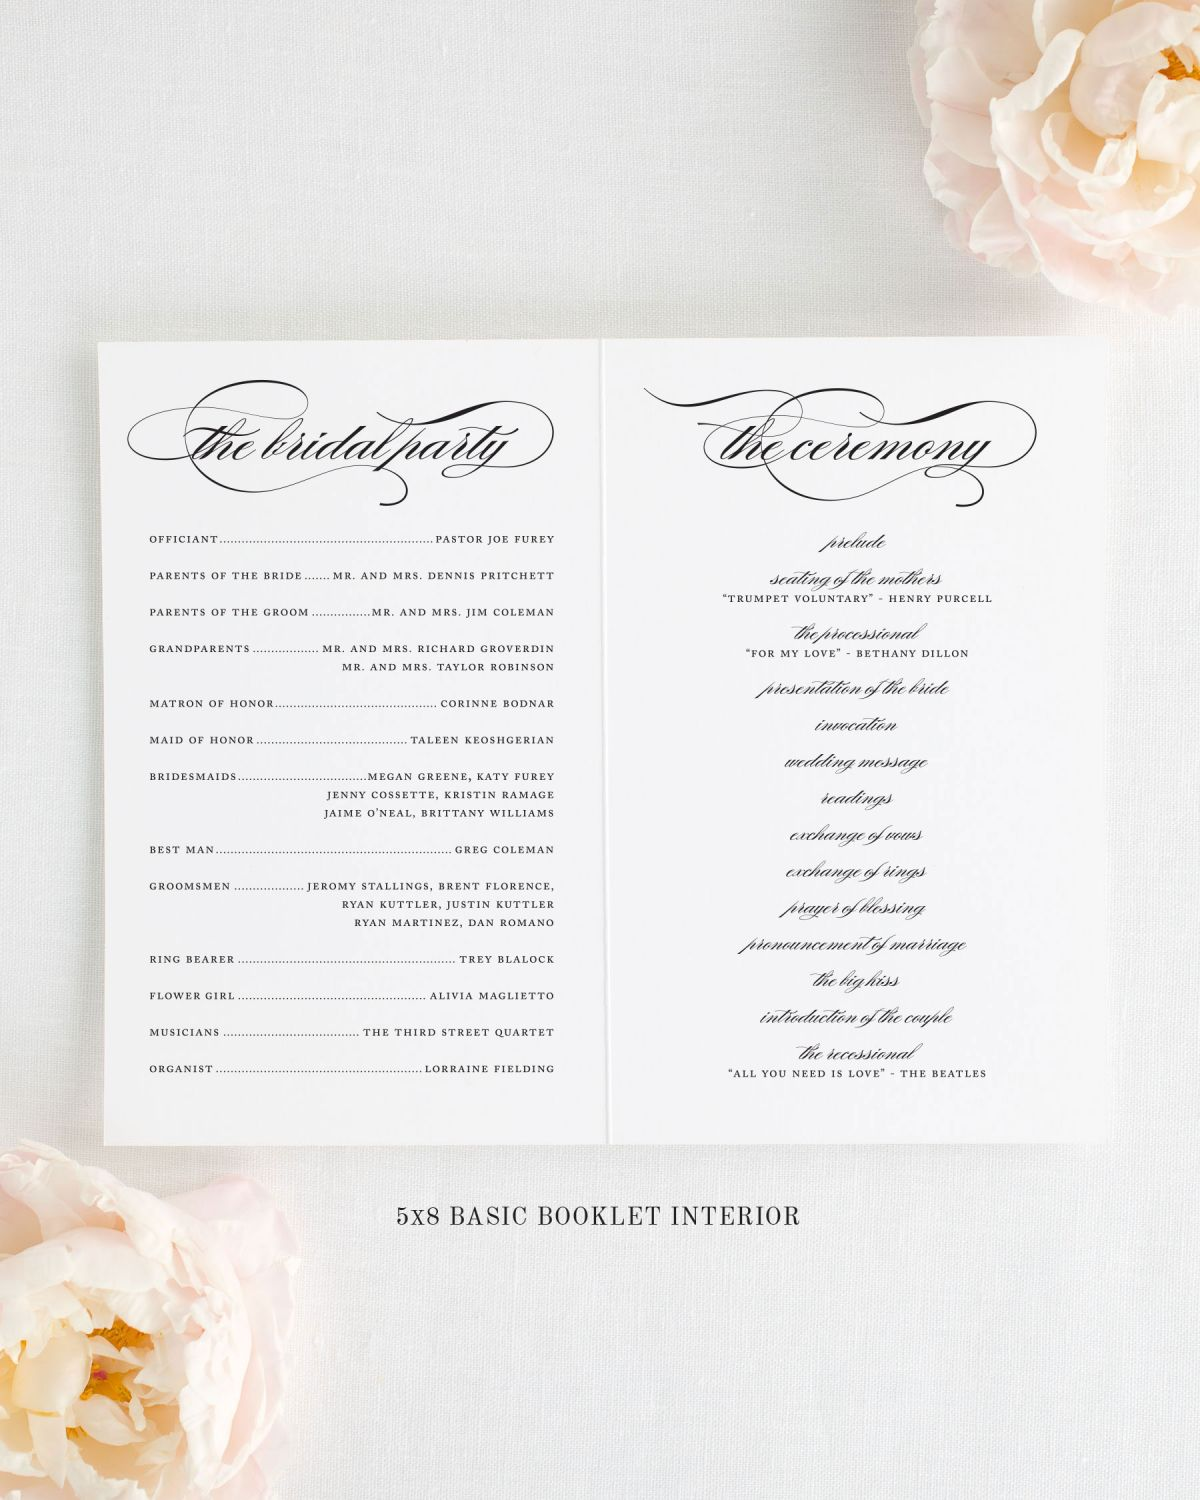 Wedding Program Interior